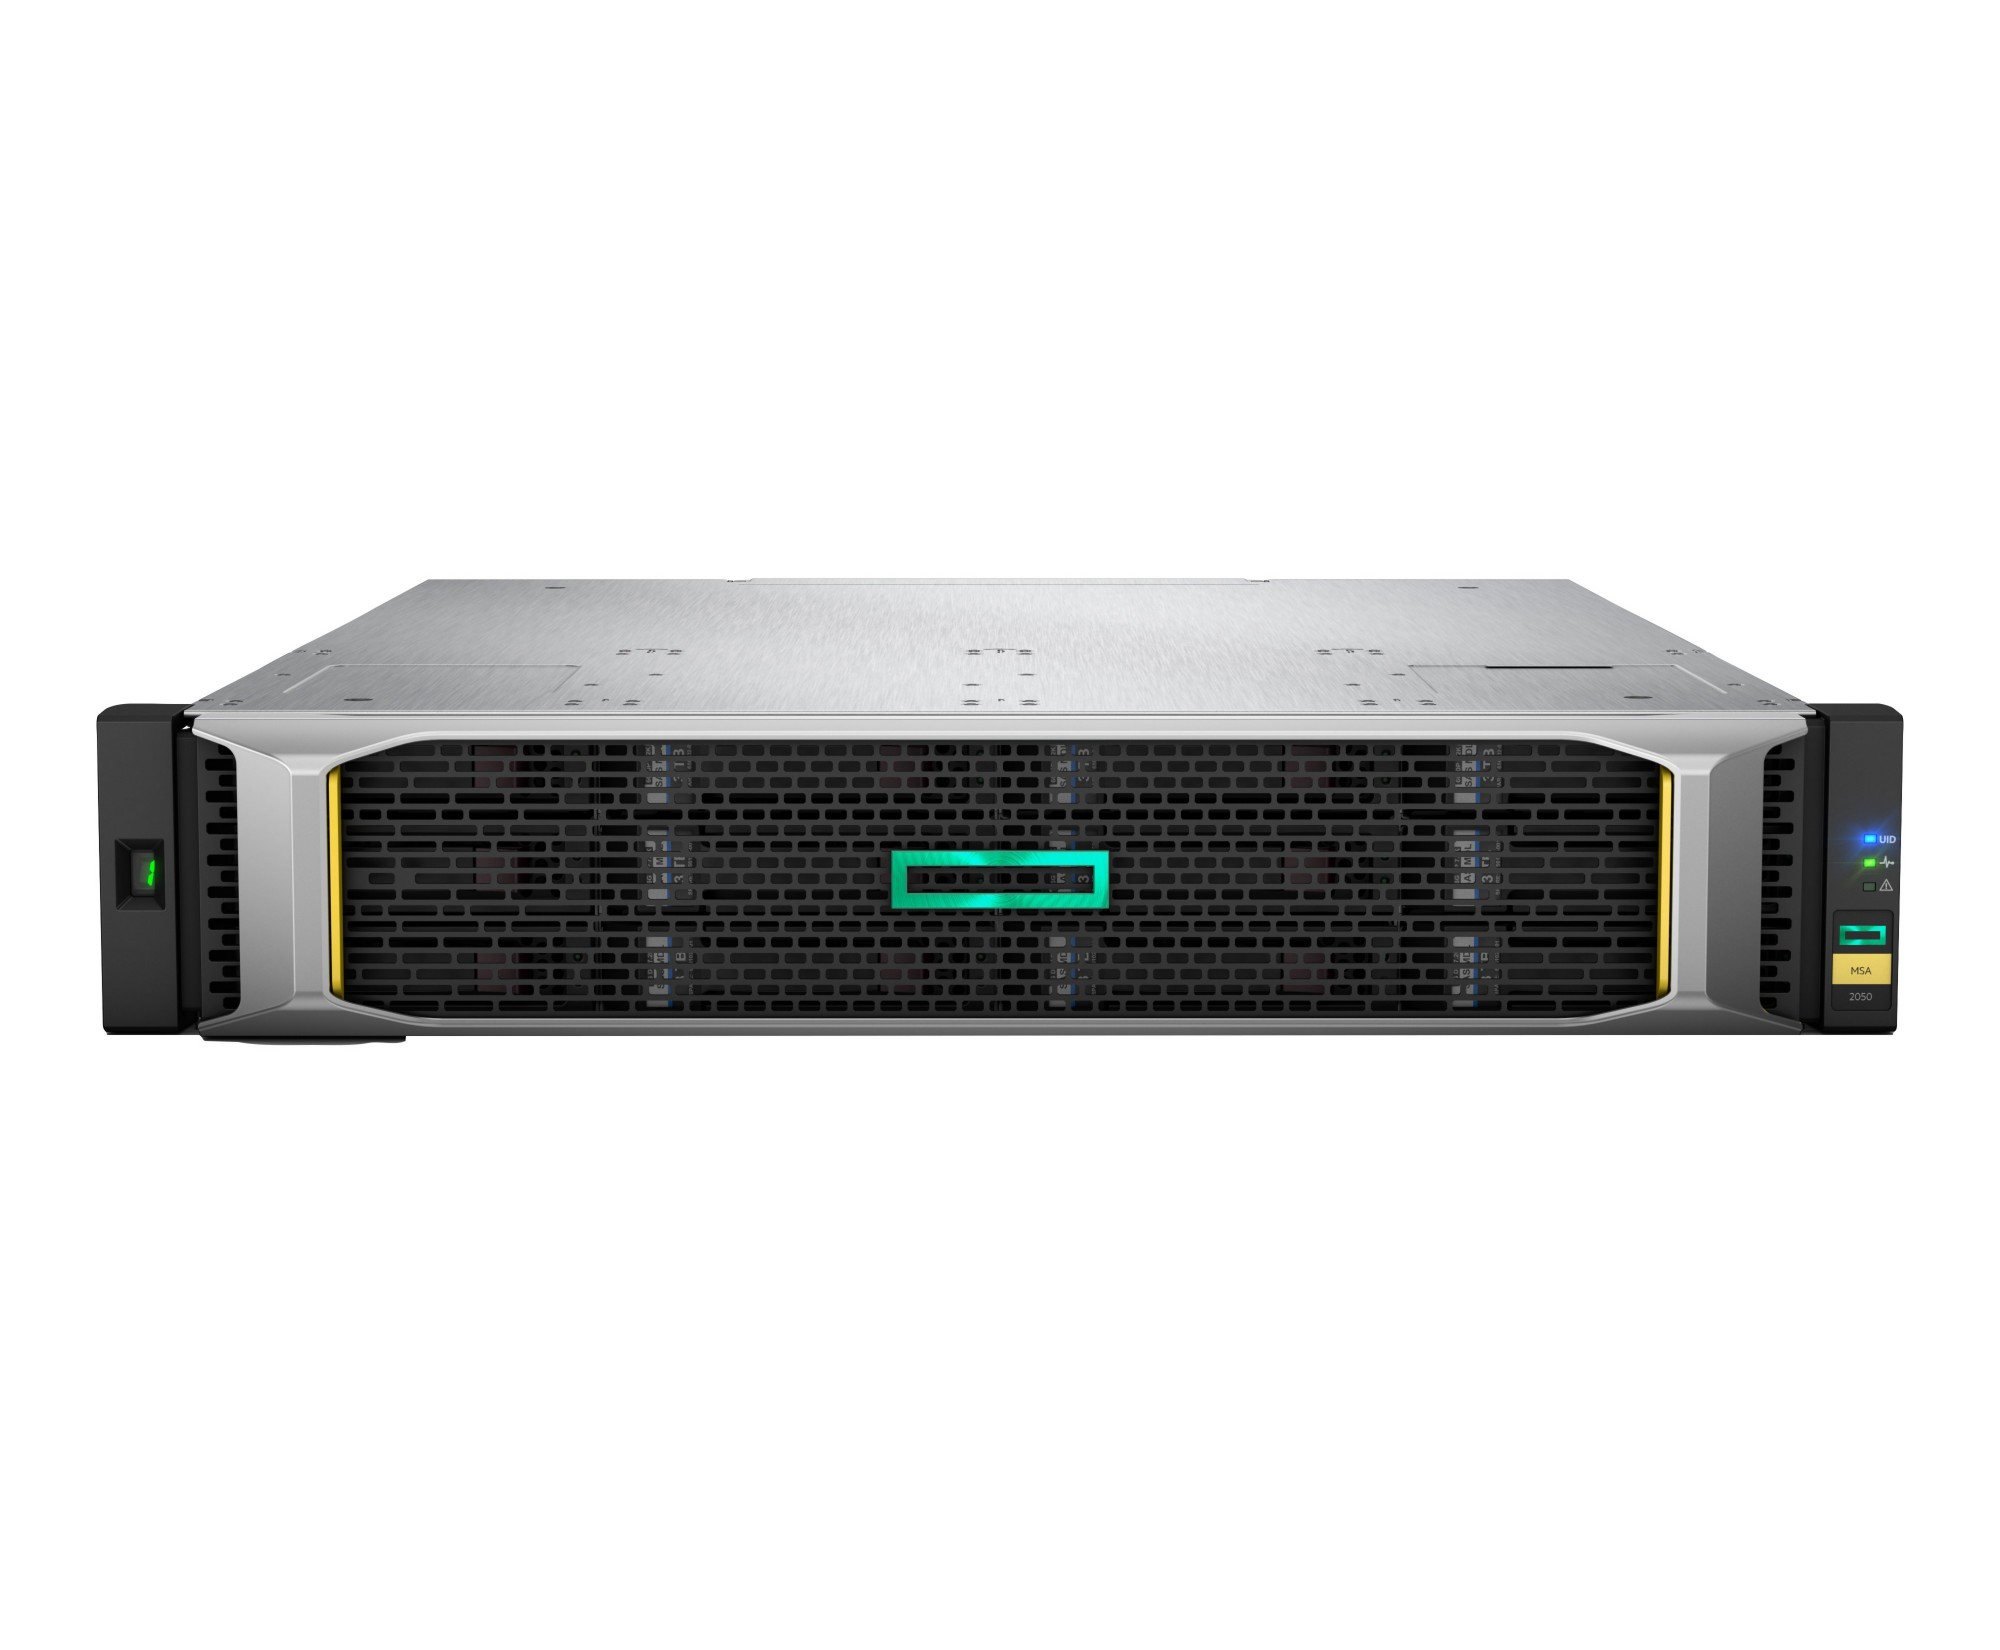 HPE Q2P39A MSA 2050 DISK ARRAY RACK (2U) BLACK